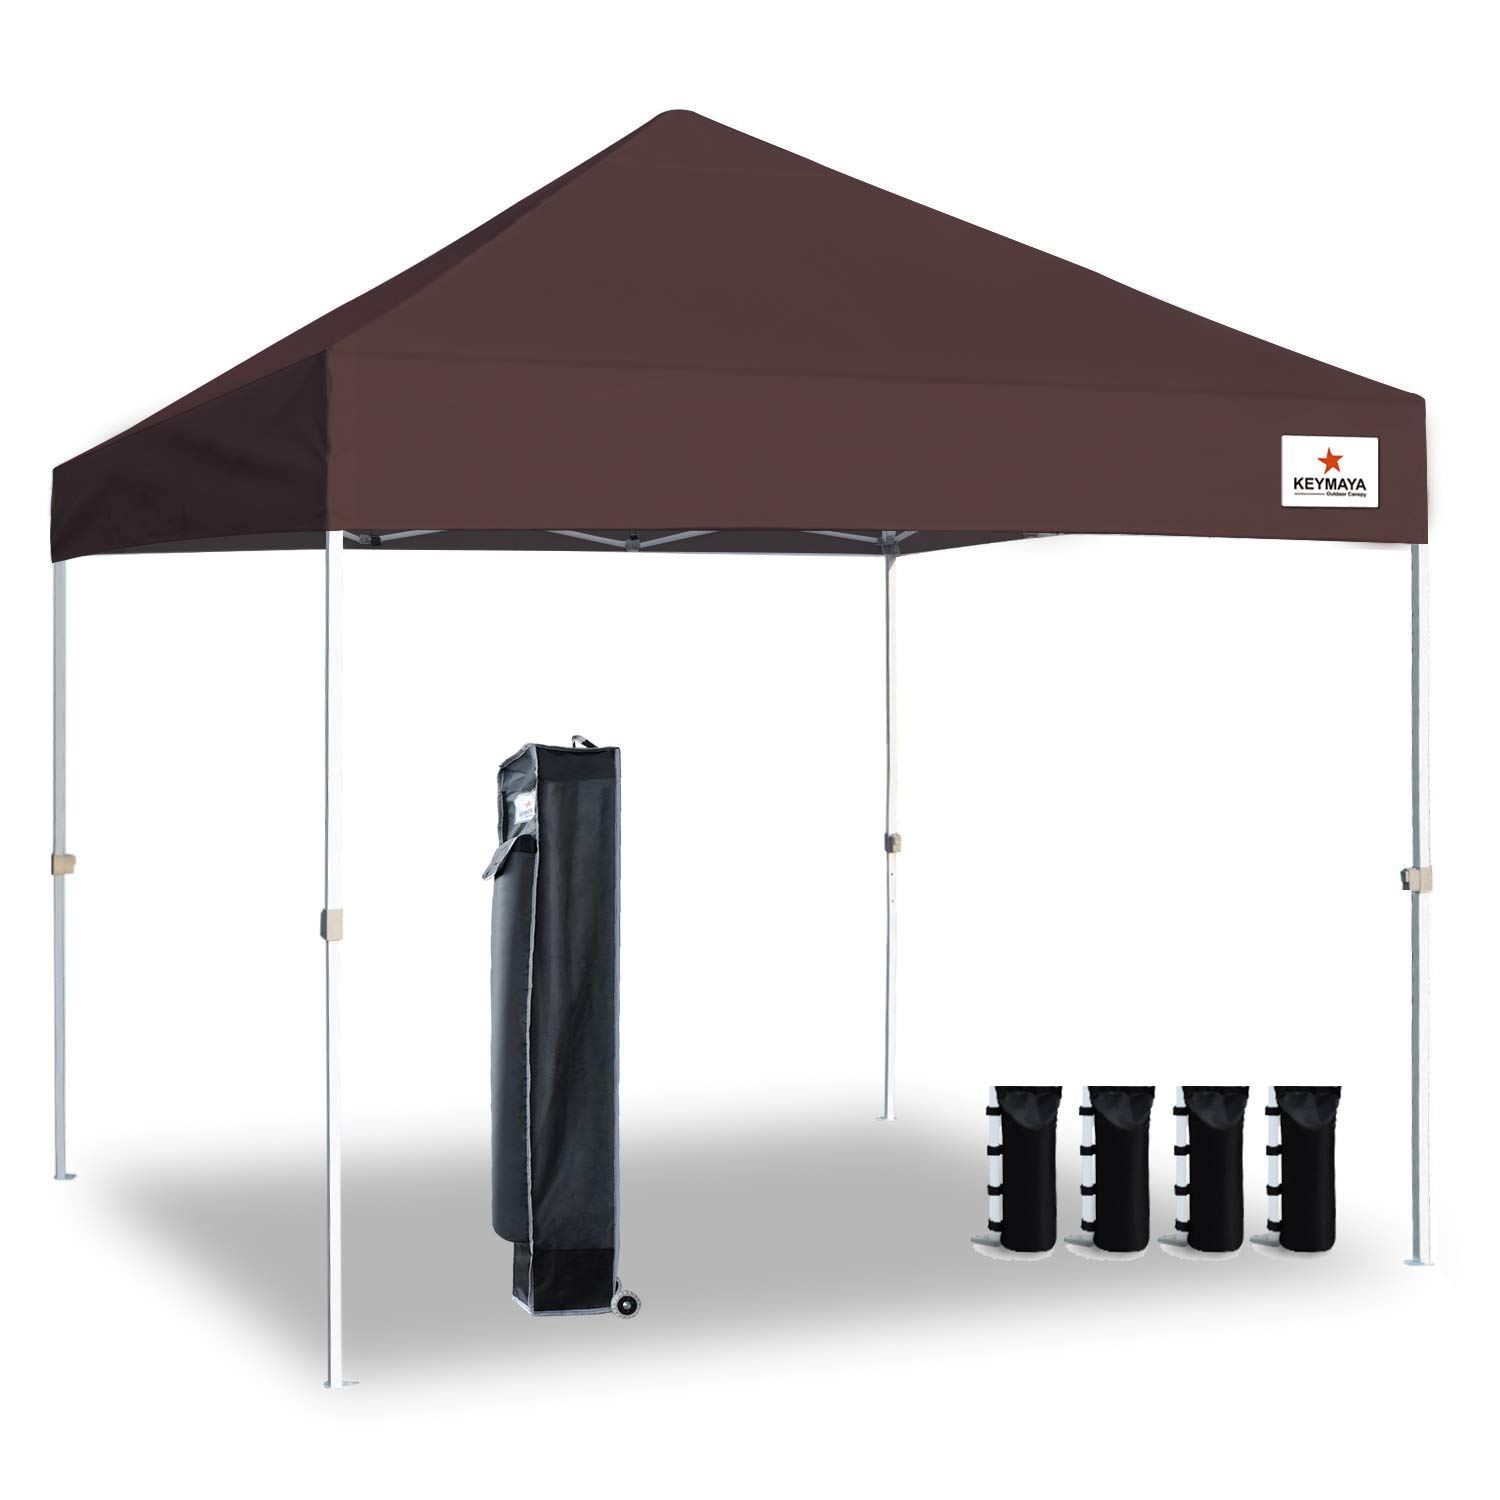 Keymaya 10 X10 Ez Pop Up Canopy Tent Commercial Instant Shelter Canopies Bonus Heavy Duty Weight Bag 4 Pc Pack Brown On Galleon Philippines